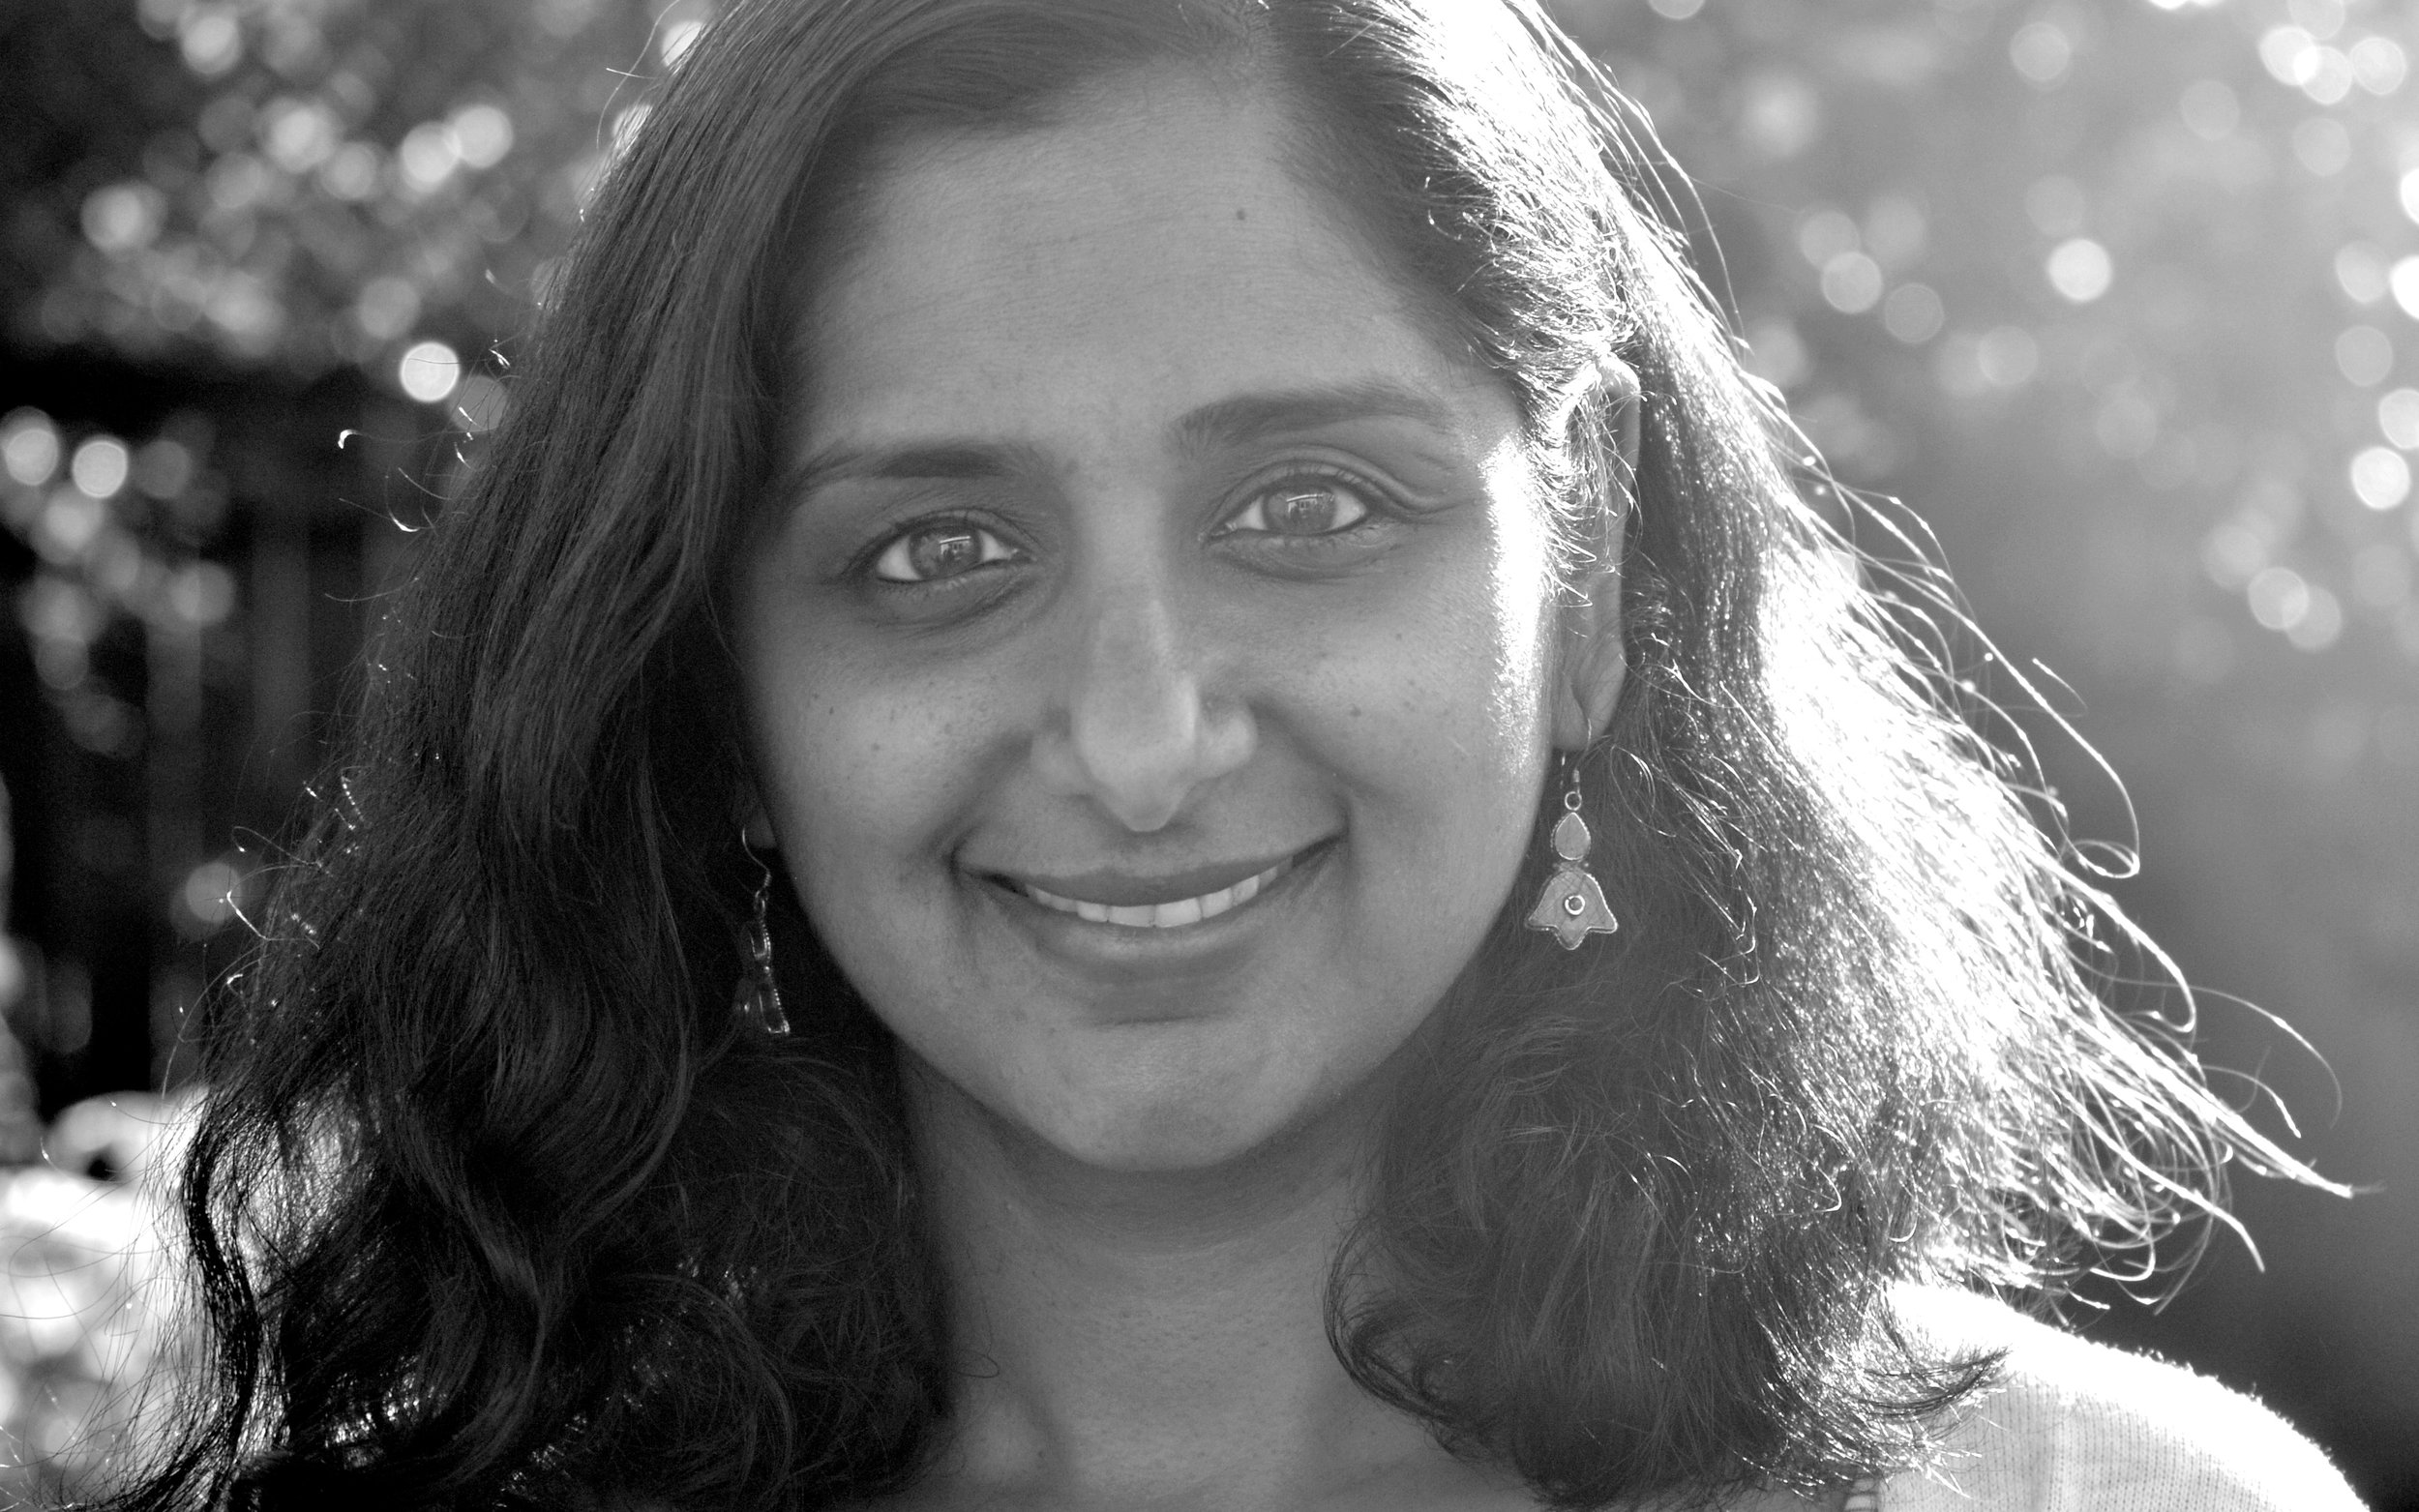 MEERA SRIRAM - Meera grew up in India and moved to the U.S at the turn of the millennium. An electrical engineer in her past life, she now enjoys writing for children and advocating early and multicultural literacy. Meera has co-authored several books published in India, and she is the author of The Yellow Suitcase. She believes in the transformative power of stories and writes on cross-cultural experiences that often take her back to her roots. Meera loves yoga and chai, and lives with her husband and two children in Berkeley, California, where she fantasizes about a world with no borders. More abour Meera at https://meerasriram.com.